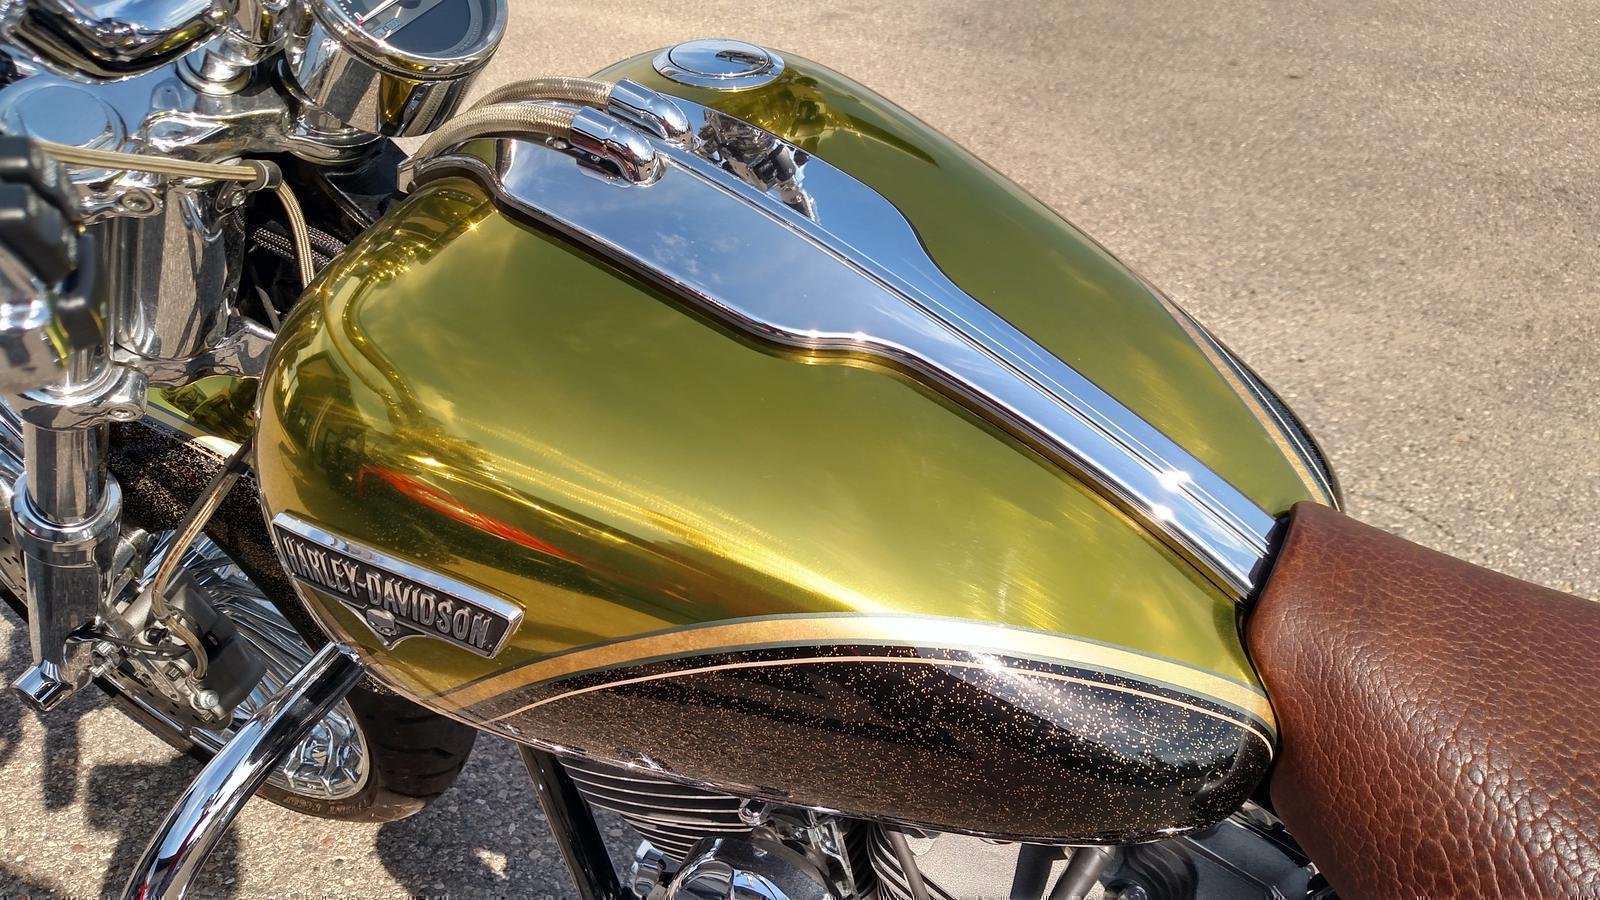 2013 Harley Davidson Fxsbse Cvo Breakout For Sale In Petoskey Mi Headlight Wiring Harness Img 20180711 173624232 Hdr 20180712 153547894 153551893